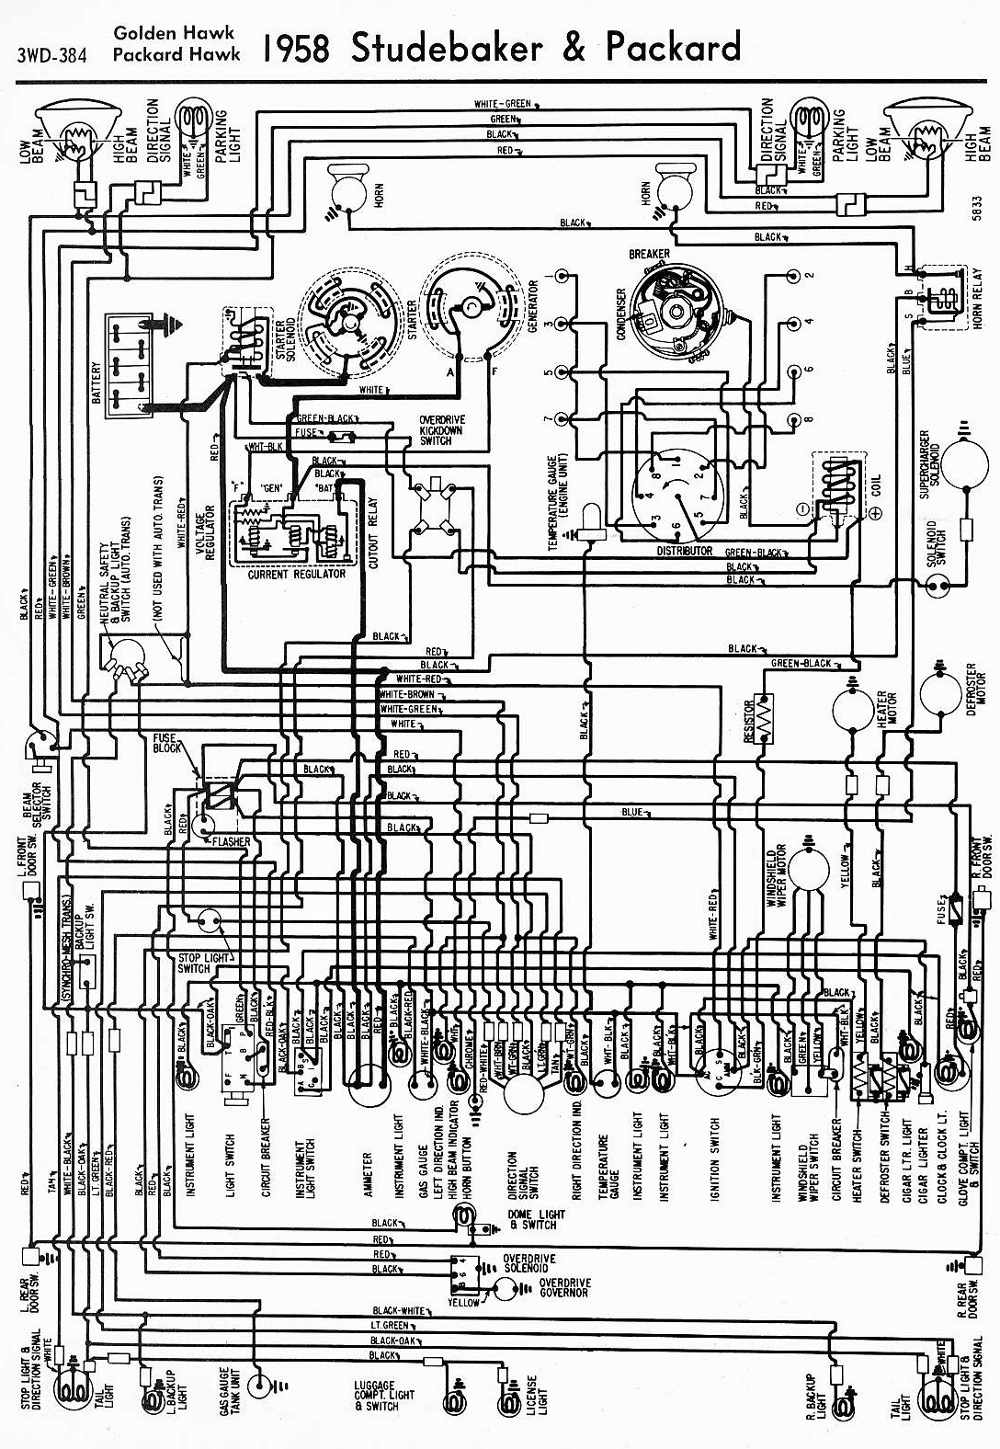 medium resolution of 1958 studebaker and packard golden hawk and packard hawk wiring diagram